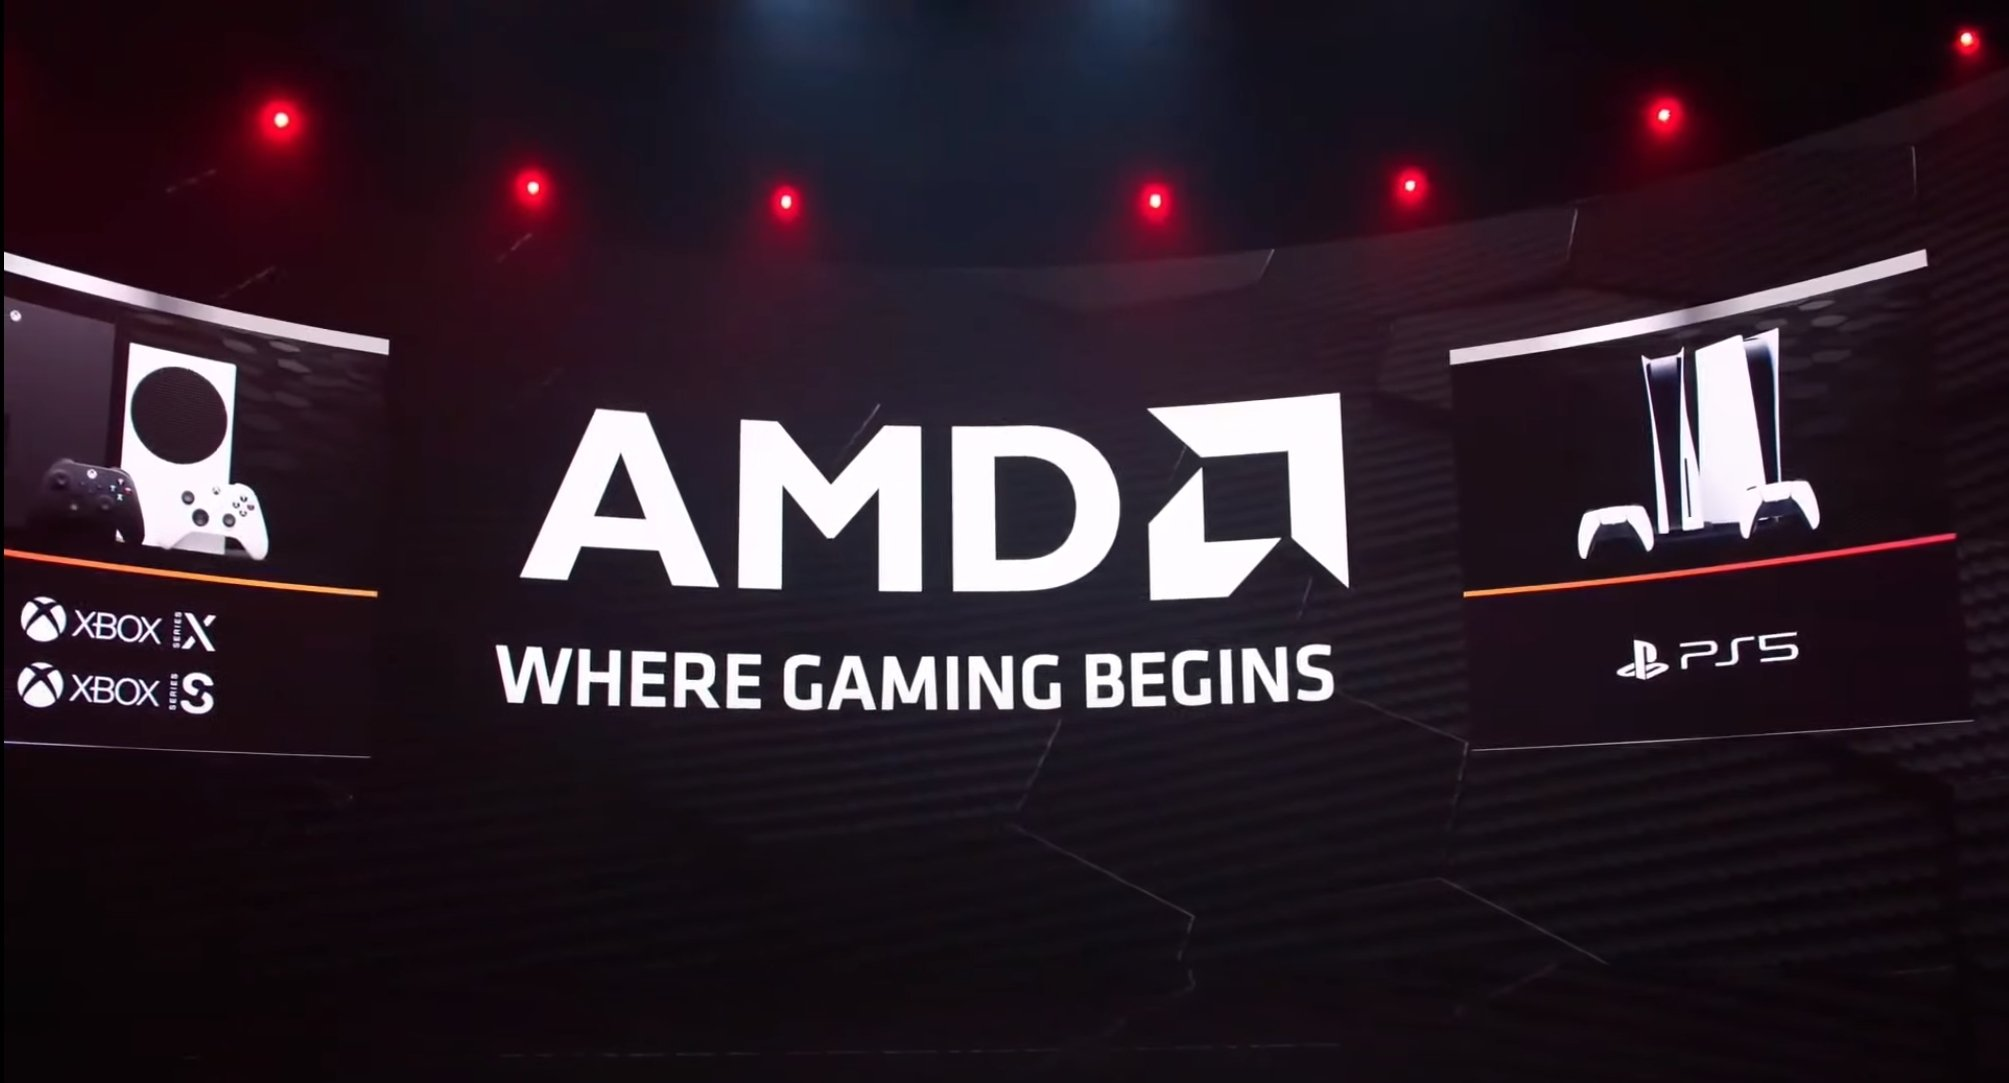 Will The Upcoming Release Of AMD's 6000-Series GPUs Be Plagued With Stock Issues As Other Tech Releases Have Been This Quarter?